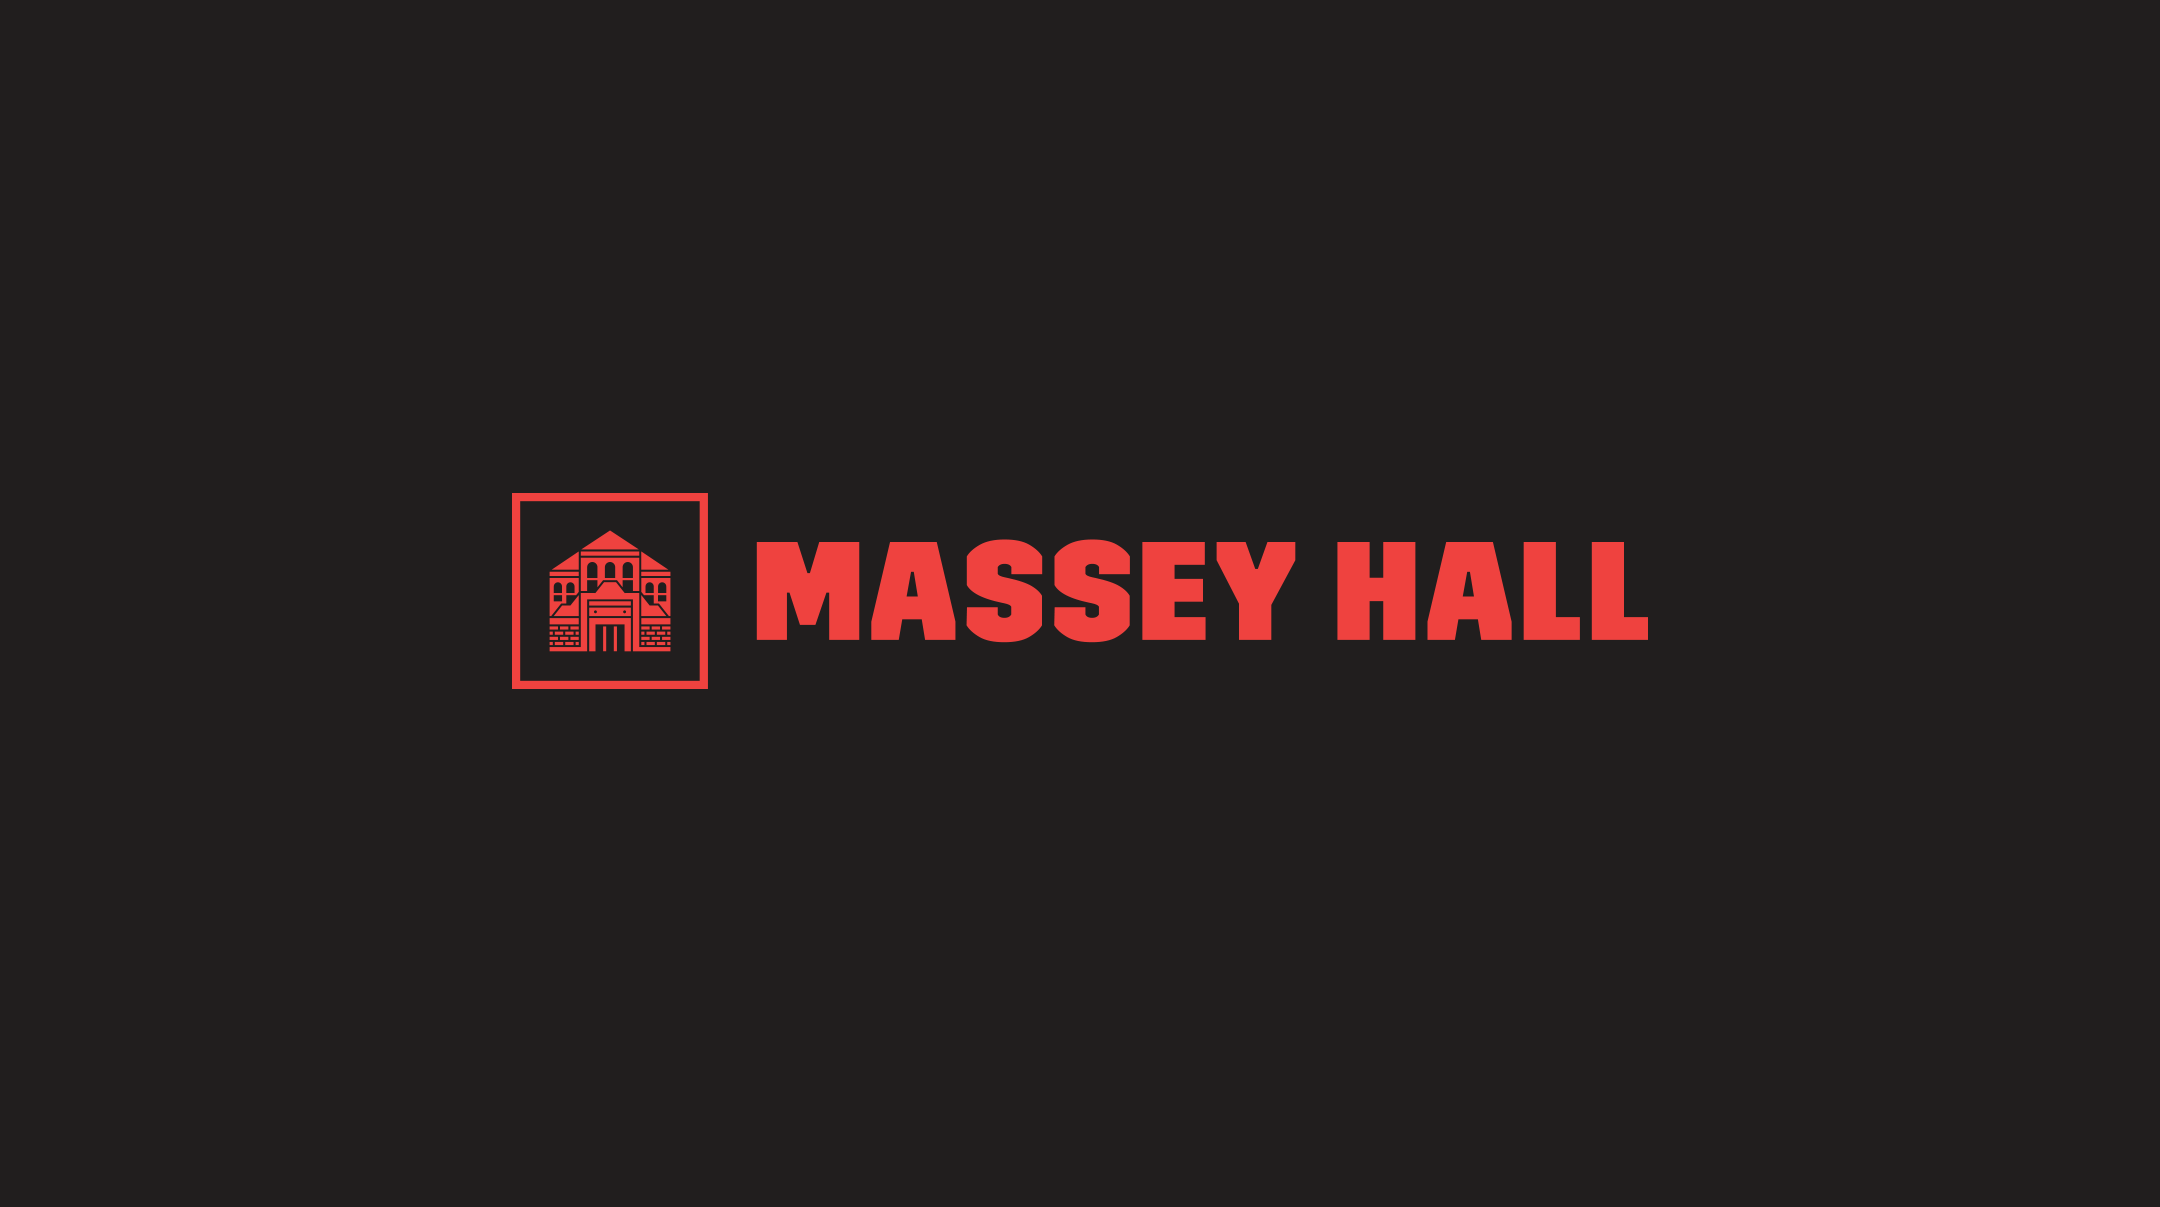 Massey Hall Wordmark